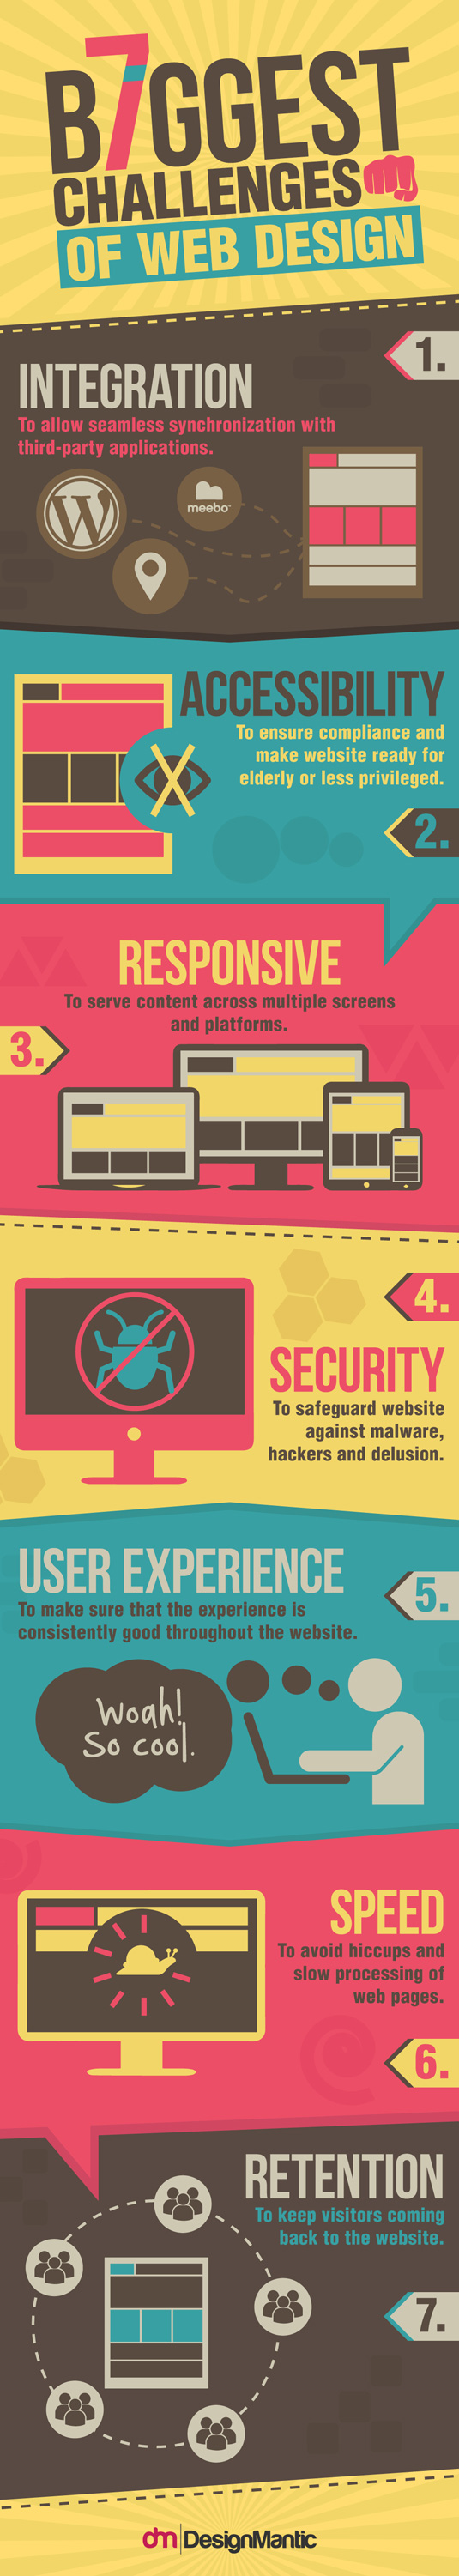 7 biggest challenges of web design infographic